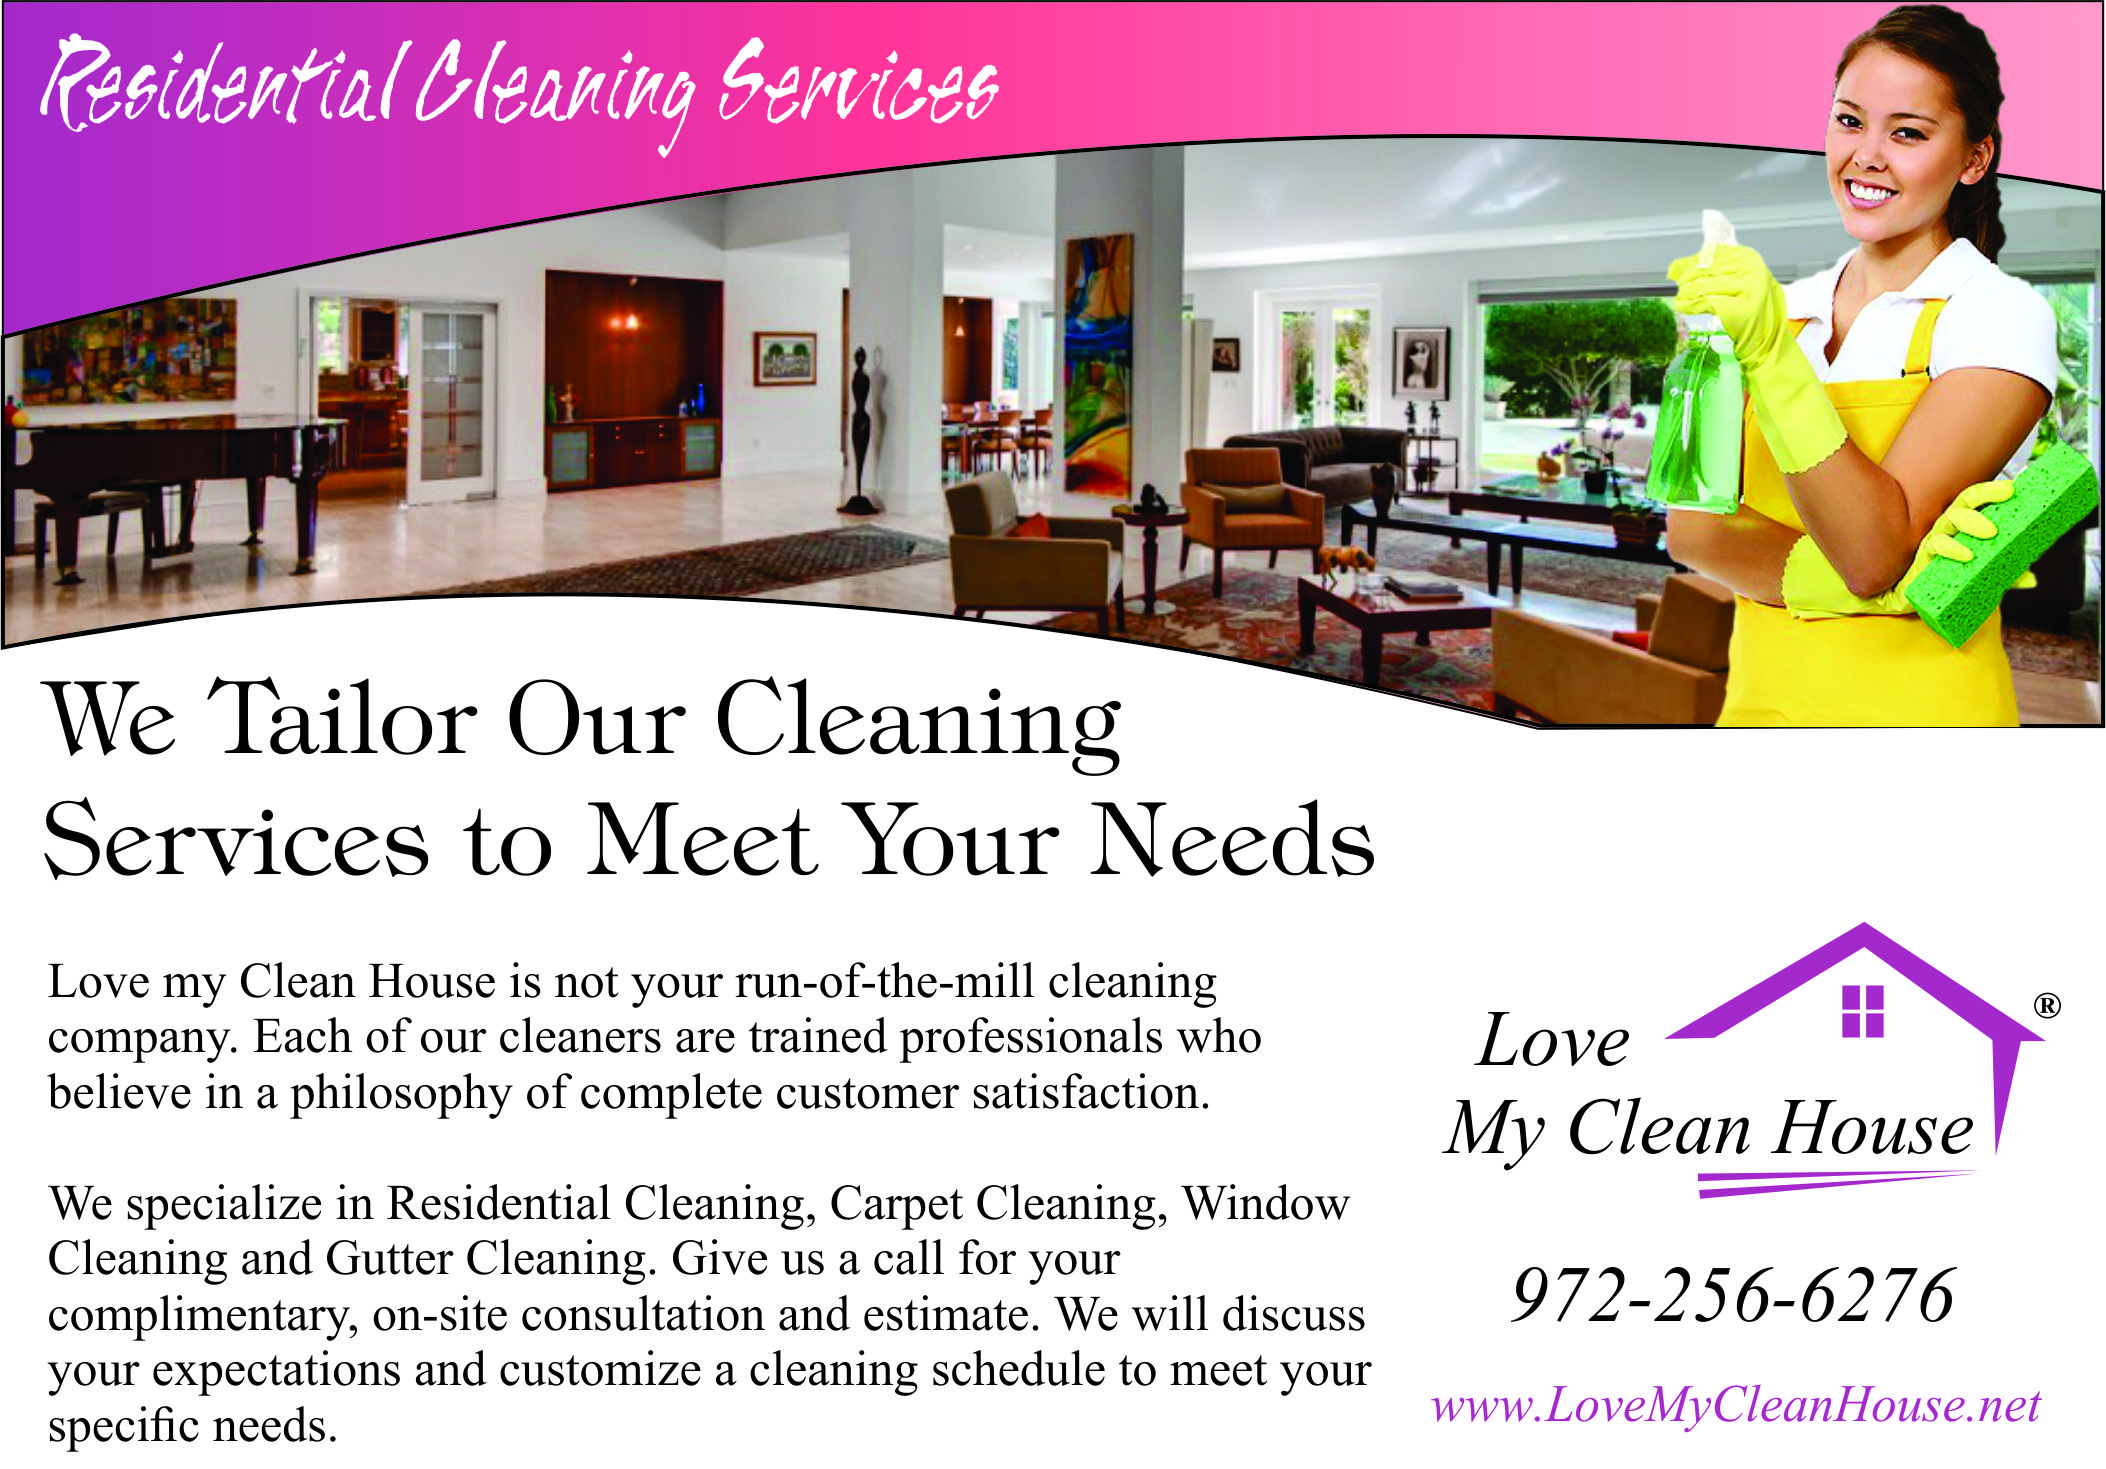 General House Cleaning Vs Deep Cleaning In Mckinney. Ford Dealership In New Jersey. Calvary Chapel School Of Ministry. Dental Hygiene Schools In Phoenix Az. Wireless Internet Blocker Uhaul Mover Helpers. Texas Business License Requirements. Window Companies Chicago Bel Air Chiropractor. Department Of Vocational Rehabilitation. Hurricane Garage Doors Miami